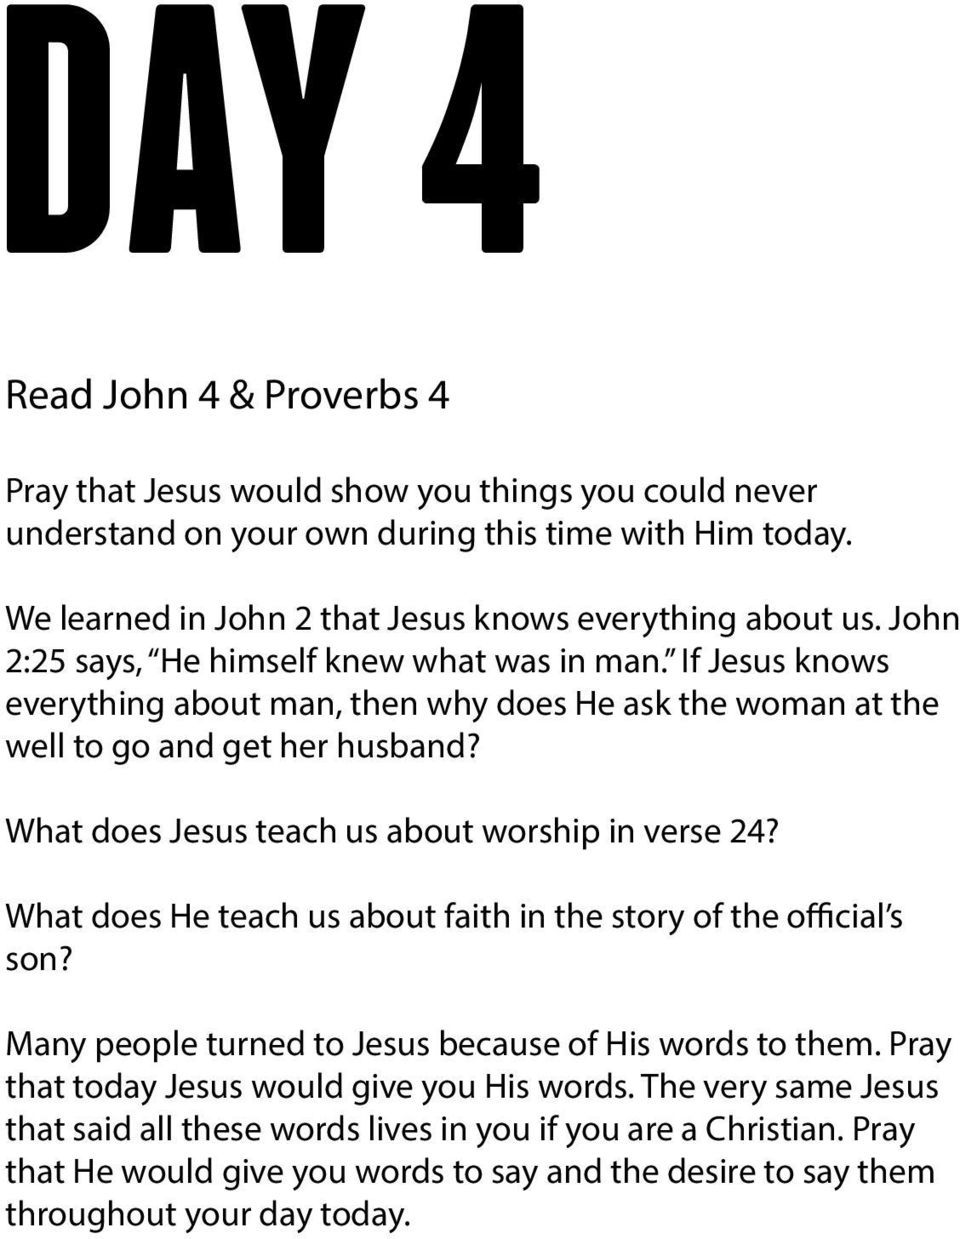 If Jesus knows everything about man, then why does He ask the woman at the well to go and get her husband? What does Jesus teach us about worship in verse 24?